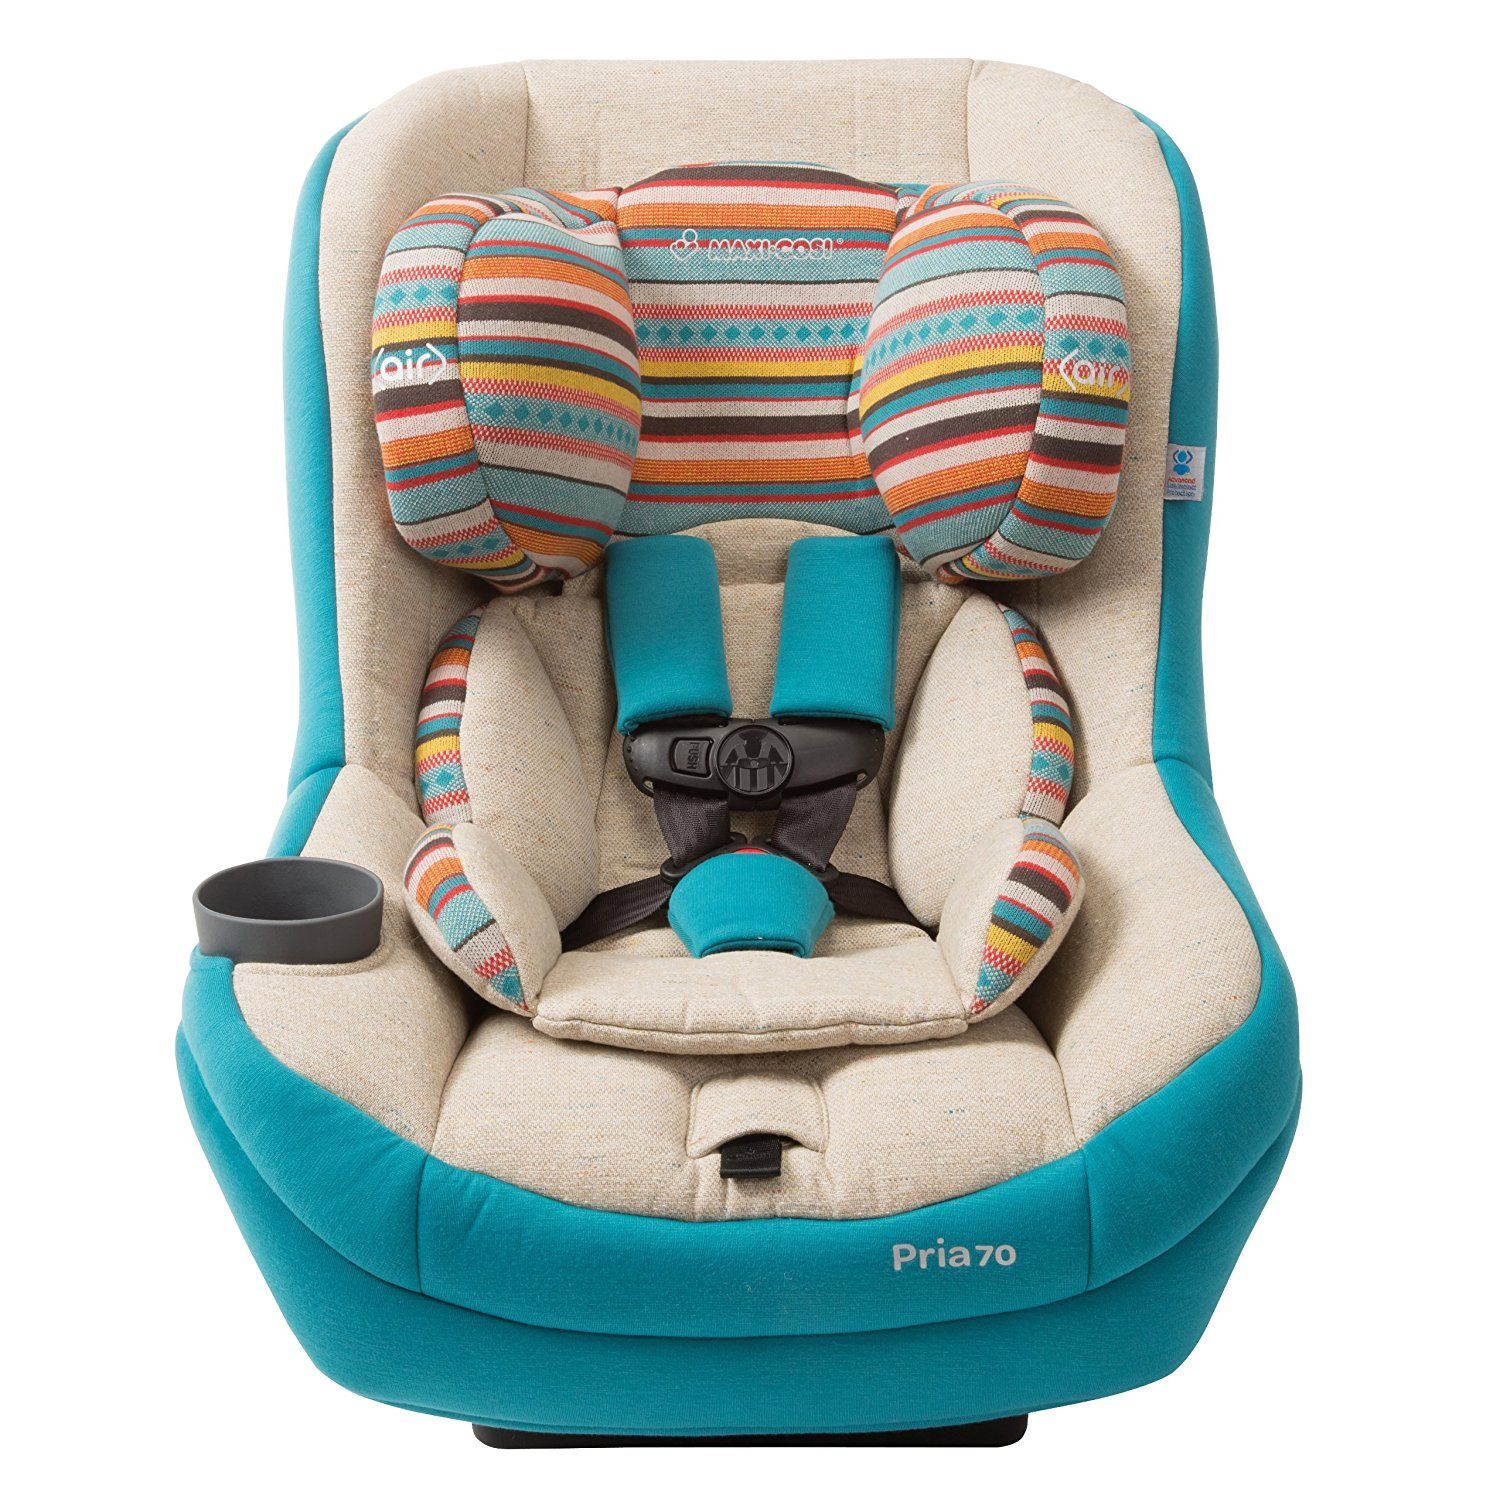 Best Convertible Car Seat For Small Cars 2020 Reviews